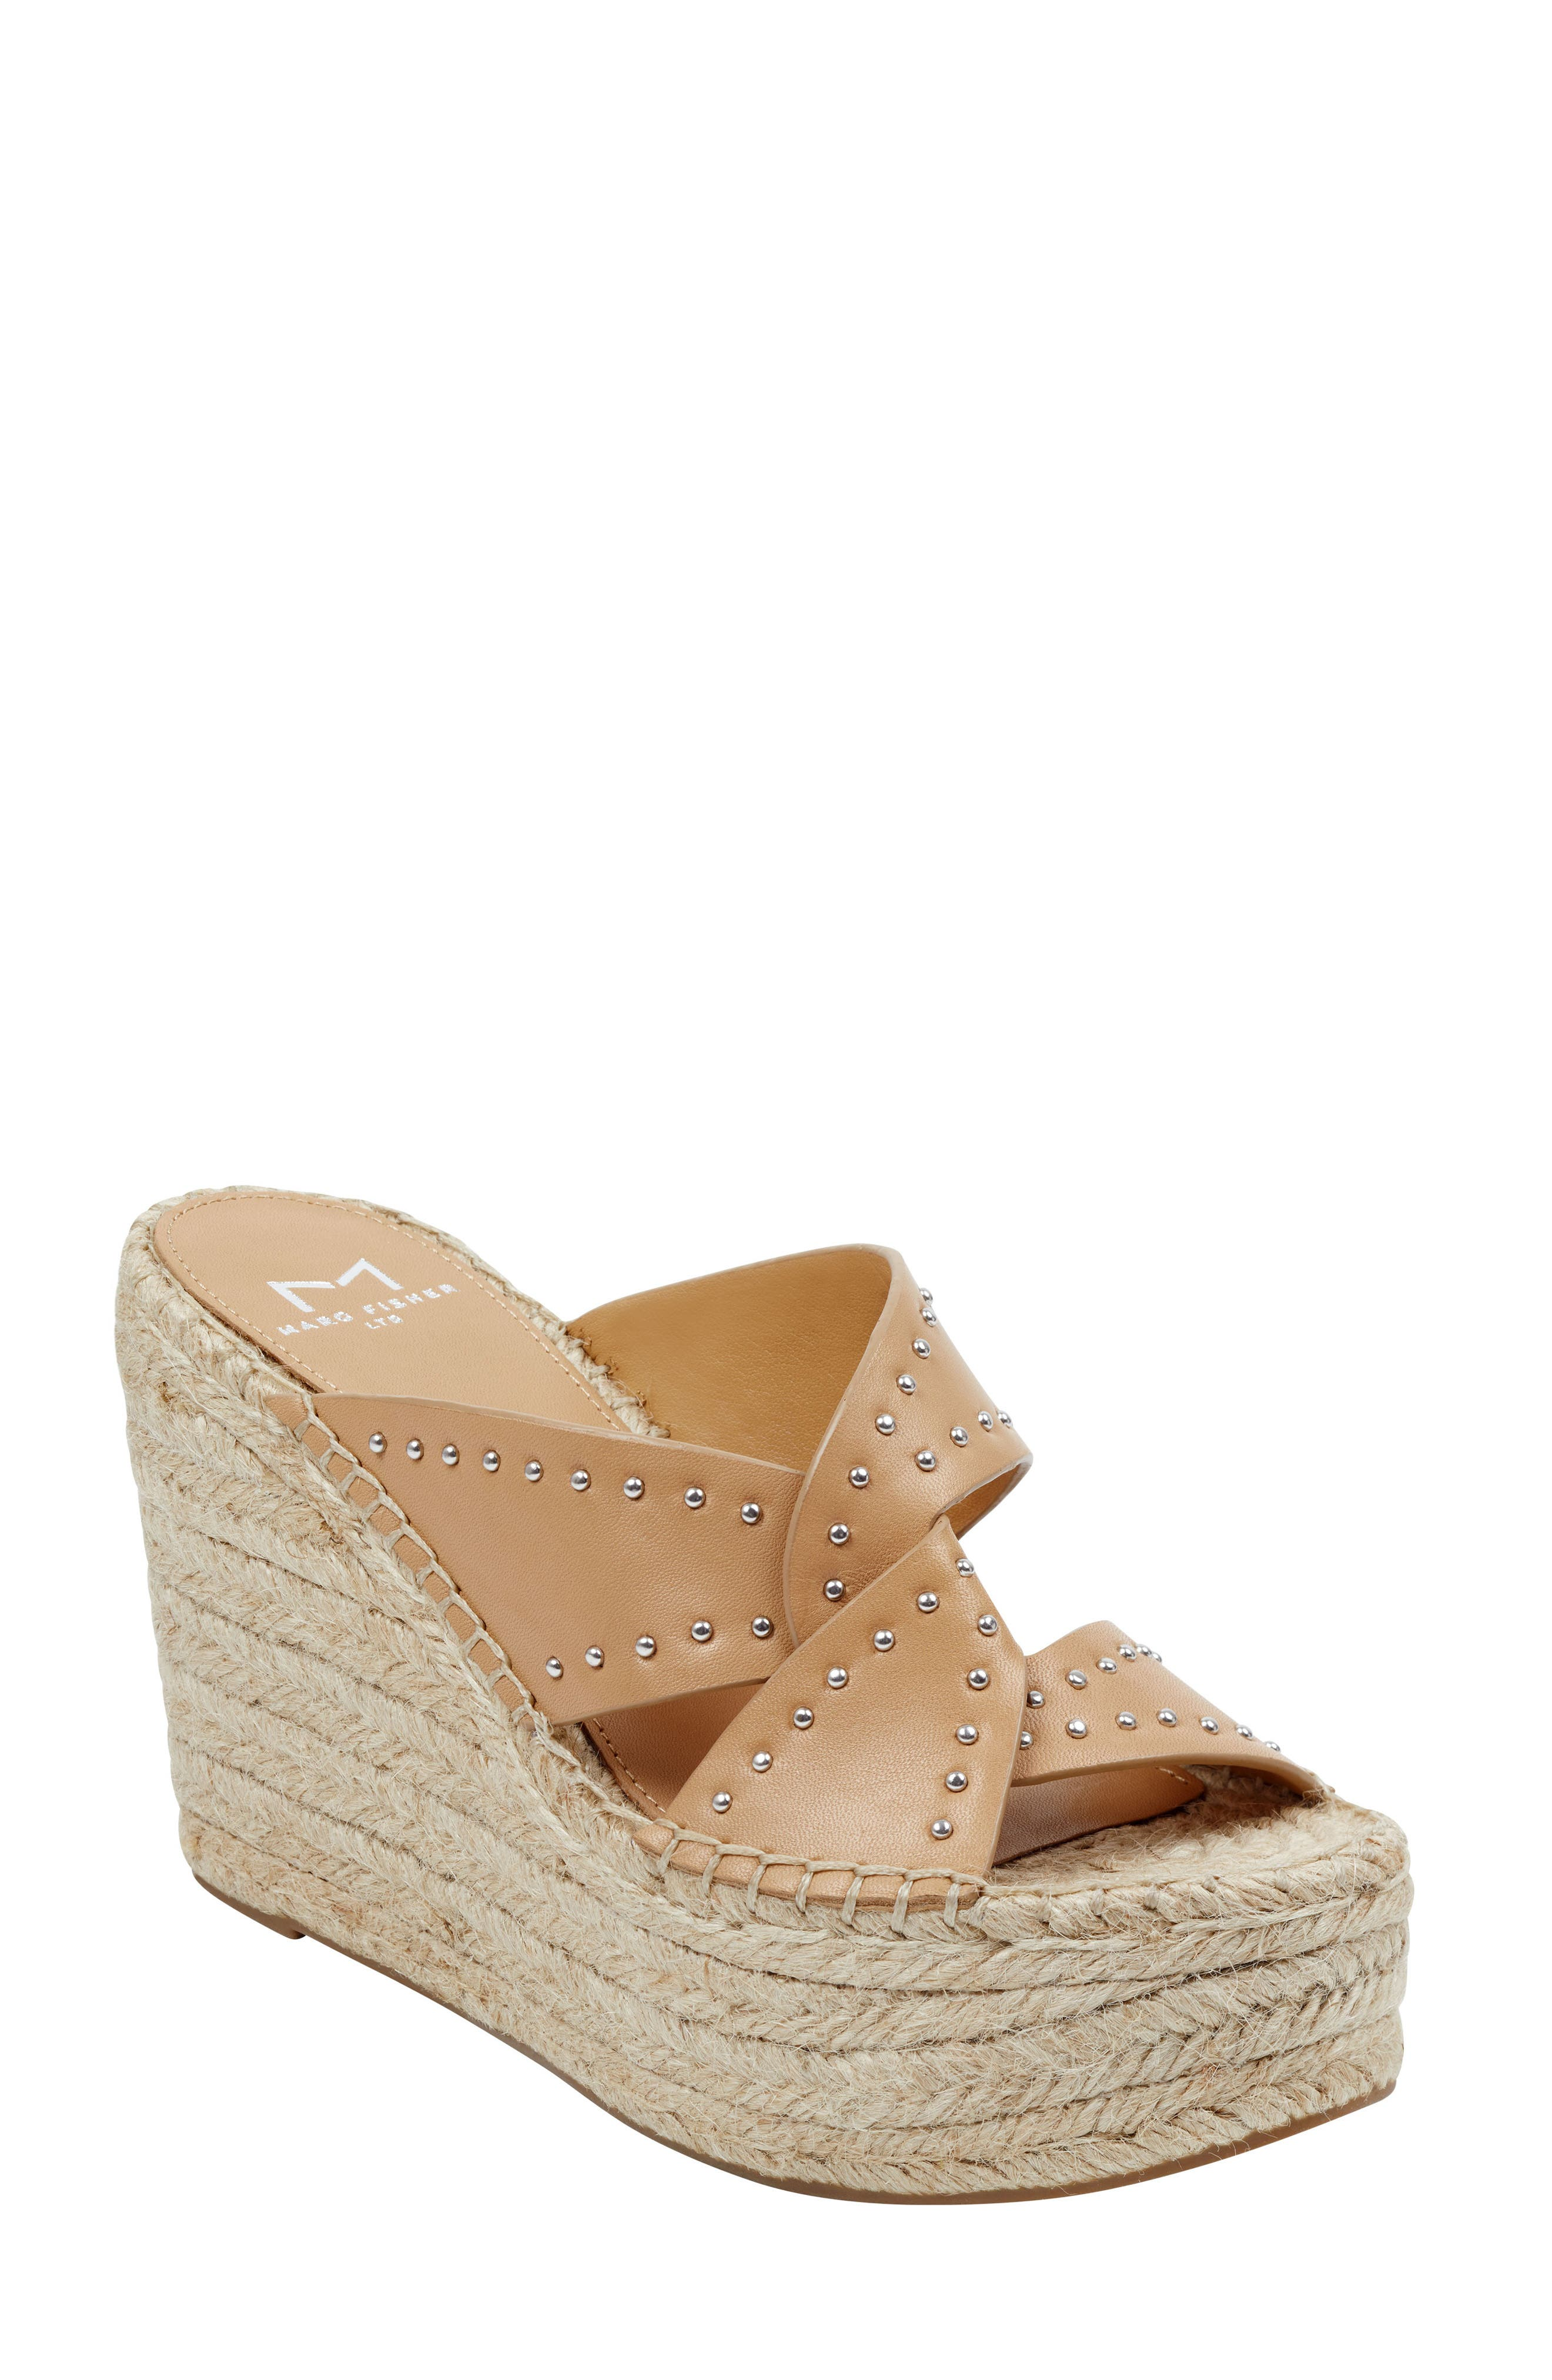 MARC FISHER LTD Angelina Espadrille Wedge, Main, color, TAN LEATHER